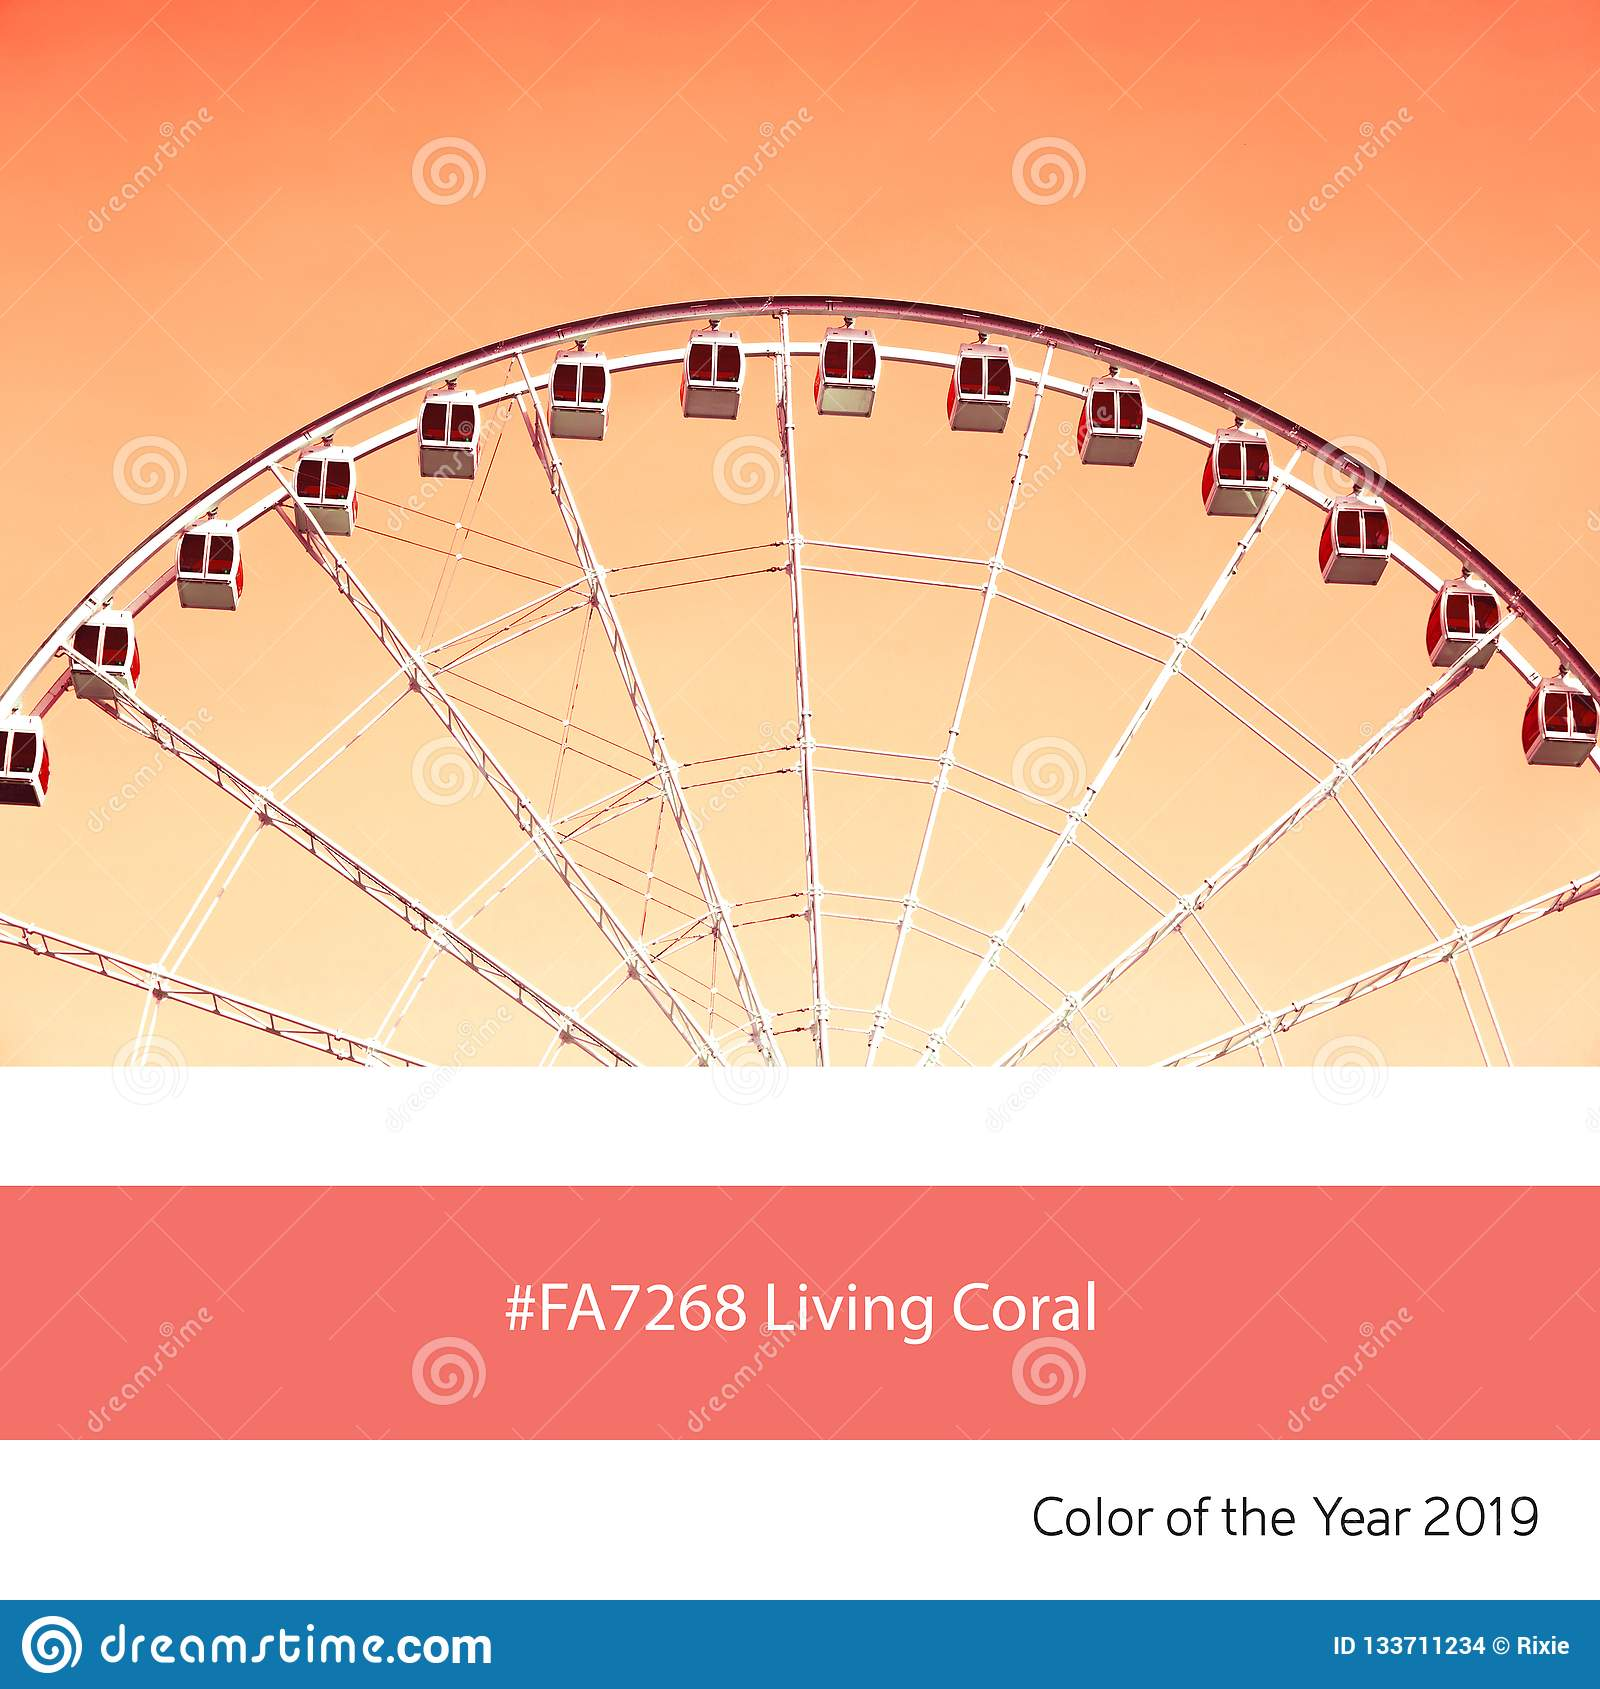 Living Coral Color of the Year, Ferris wheel